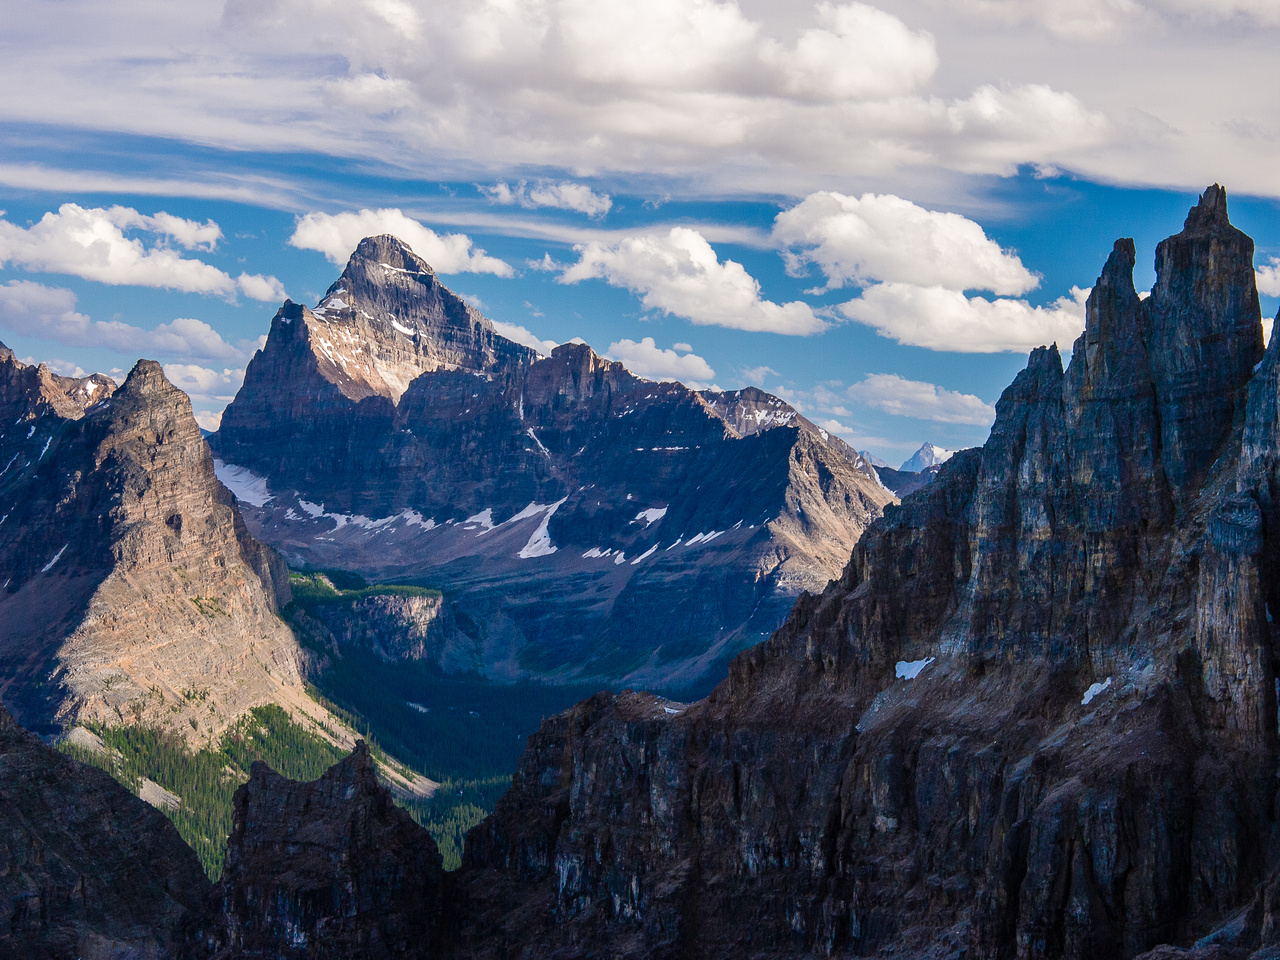 Amazing views into the Lake O'Hara region, including the very sexy Mount Biddle rising over the Opabin Plateau.